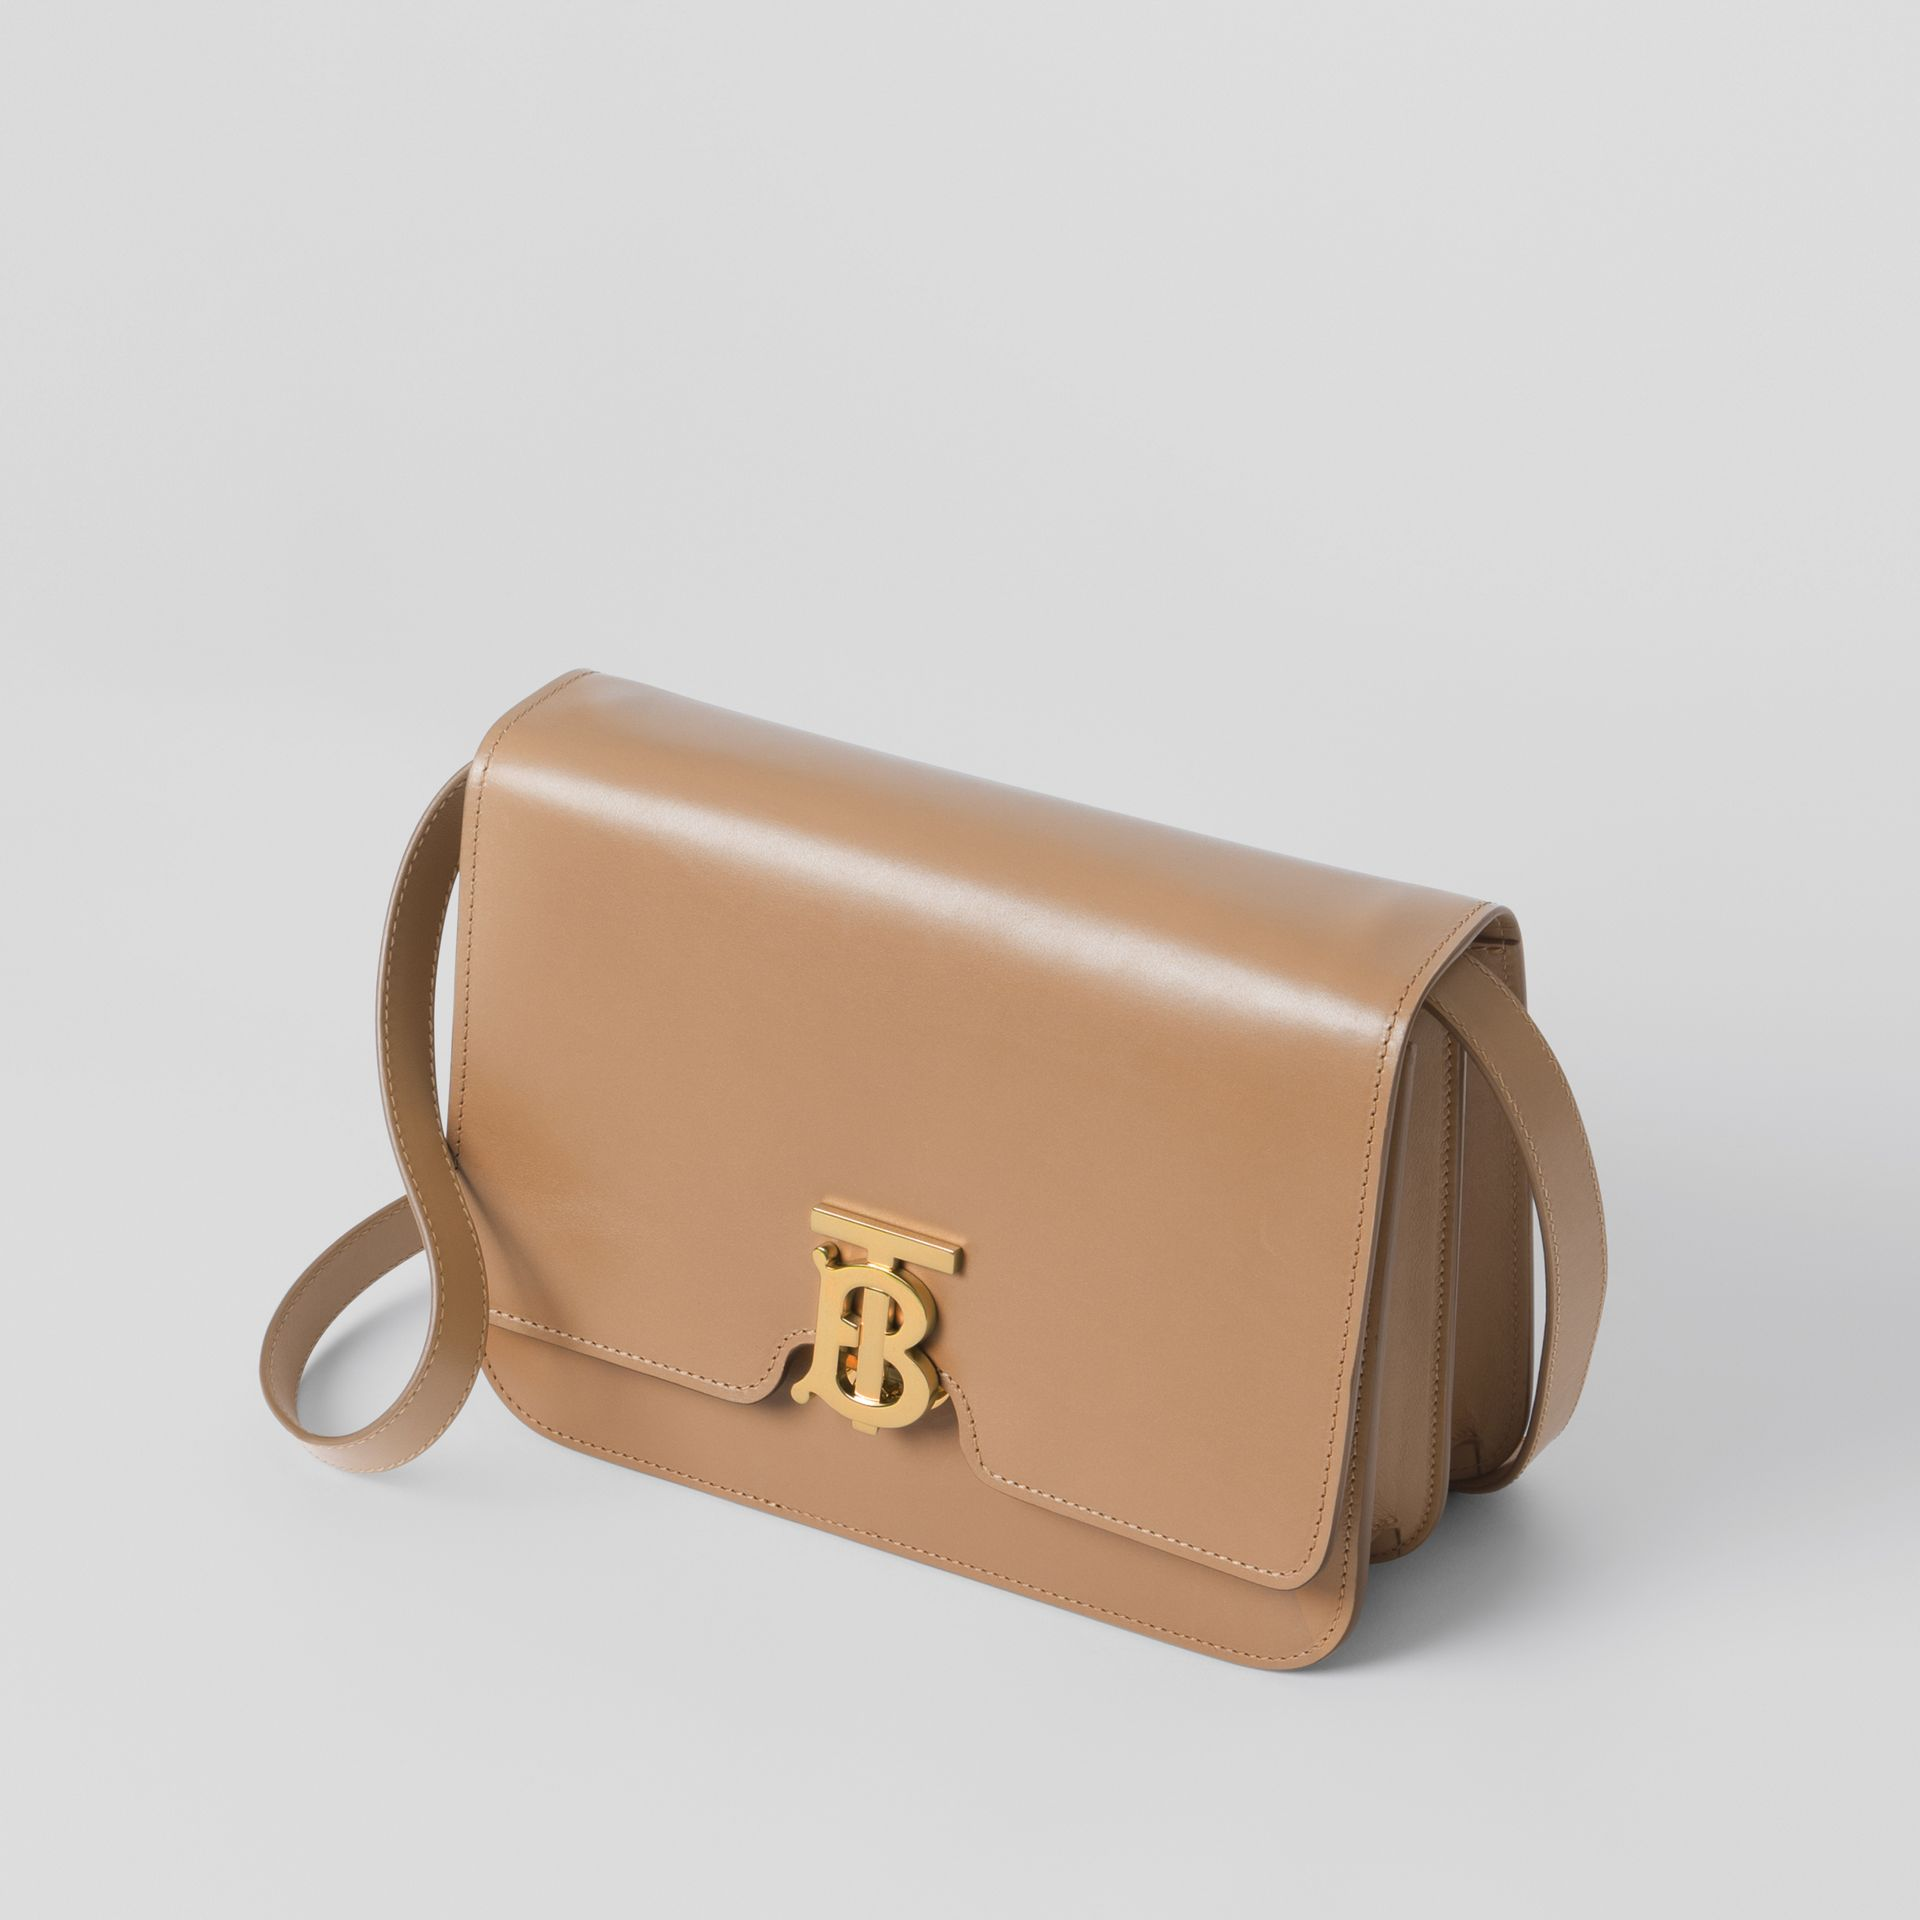 Medium Leather TB Bag in Light Camel - Women | Burberry Canada - gallery image 1